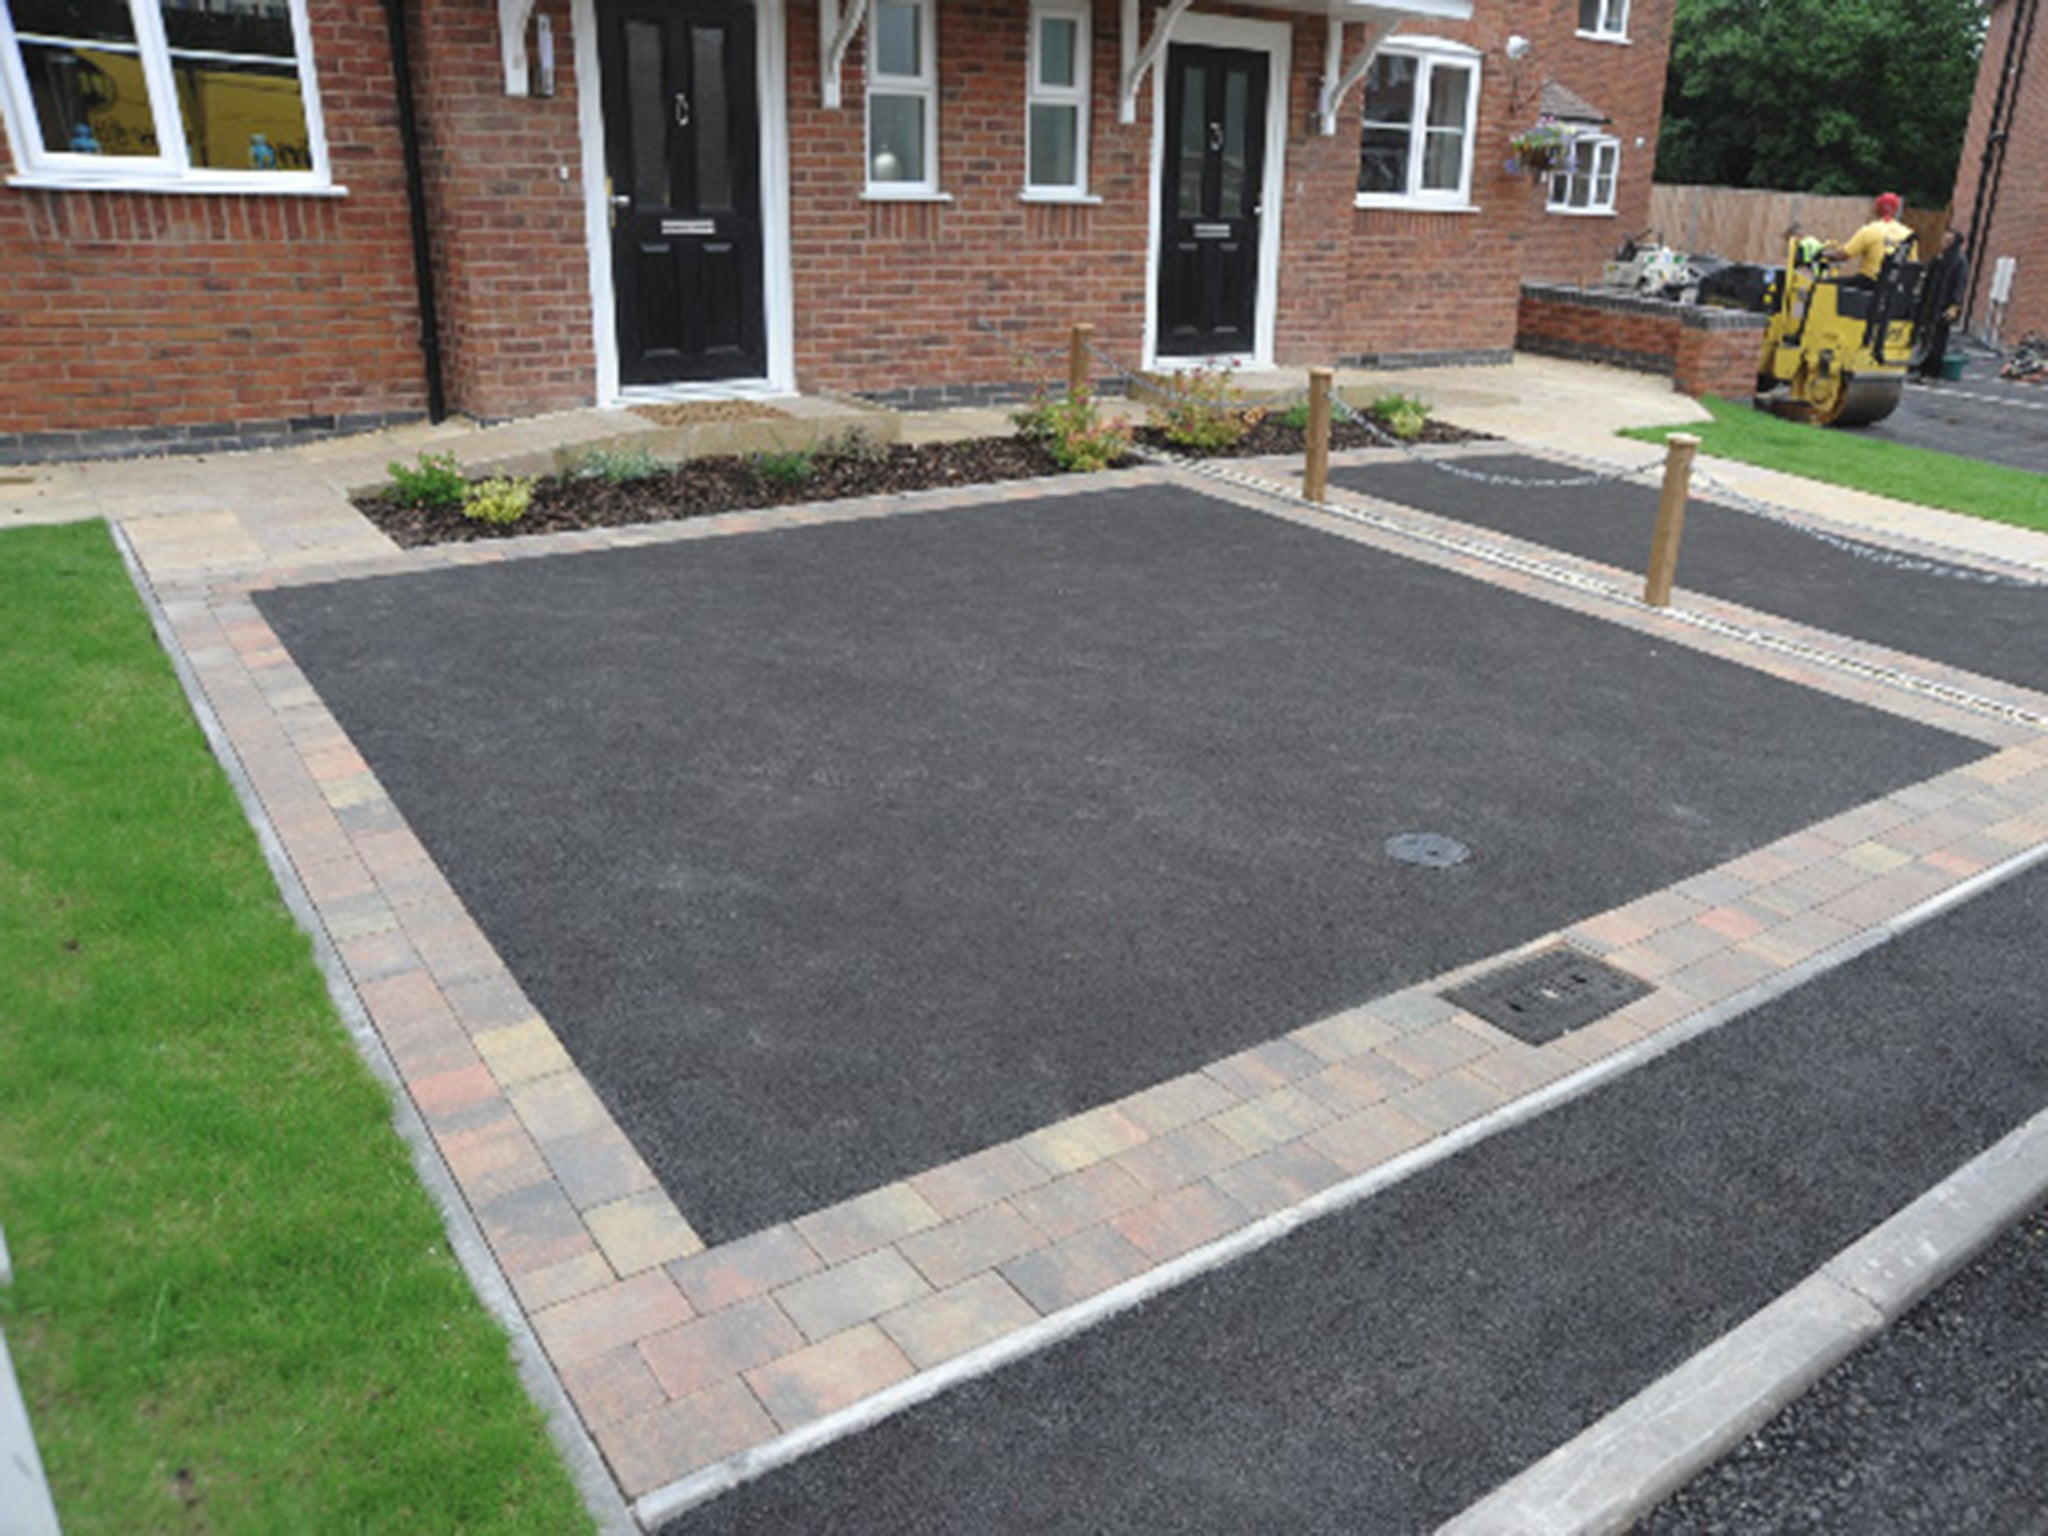 Paved gardens massively increase risk of flooding in your